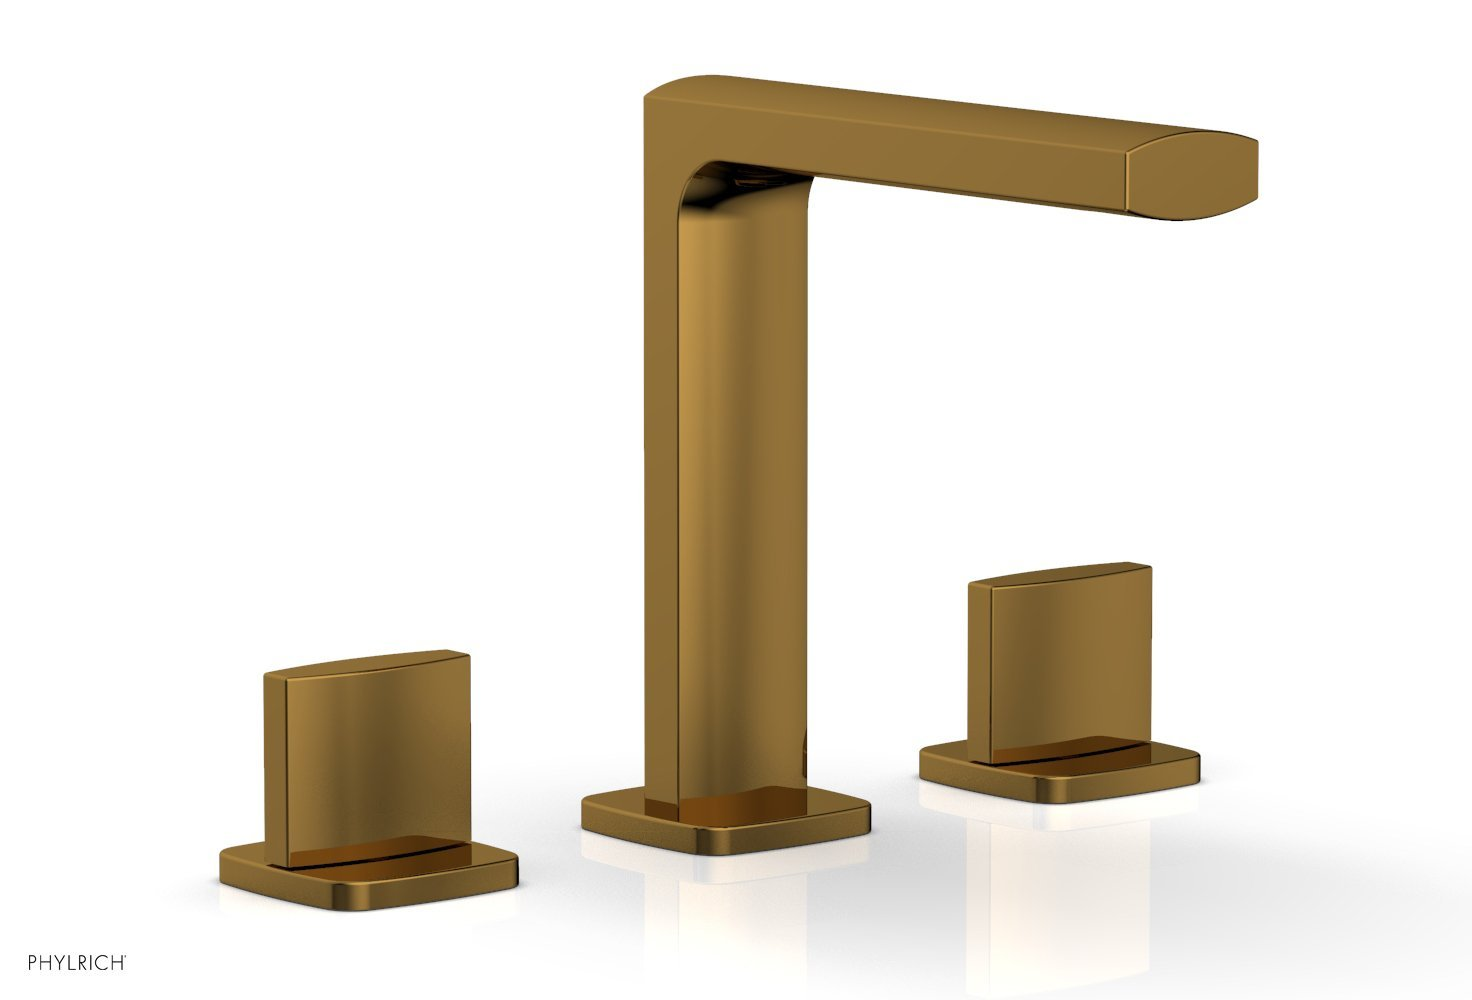 Phylrich 181-01-002 RADI Widespread Faucet - Blade Handle High Spout - French Brass